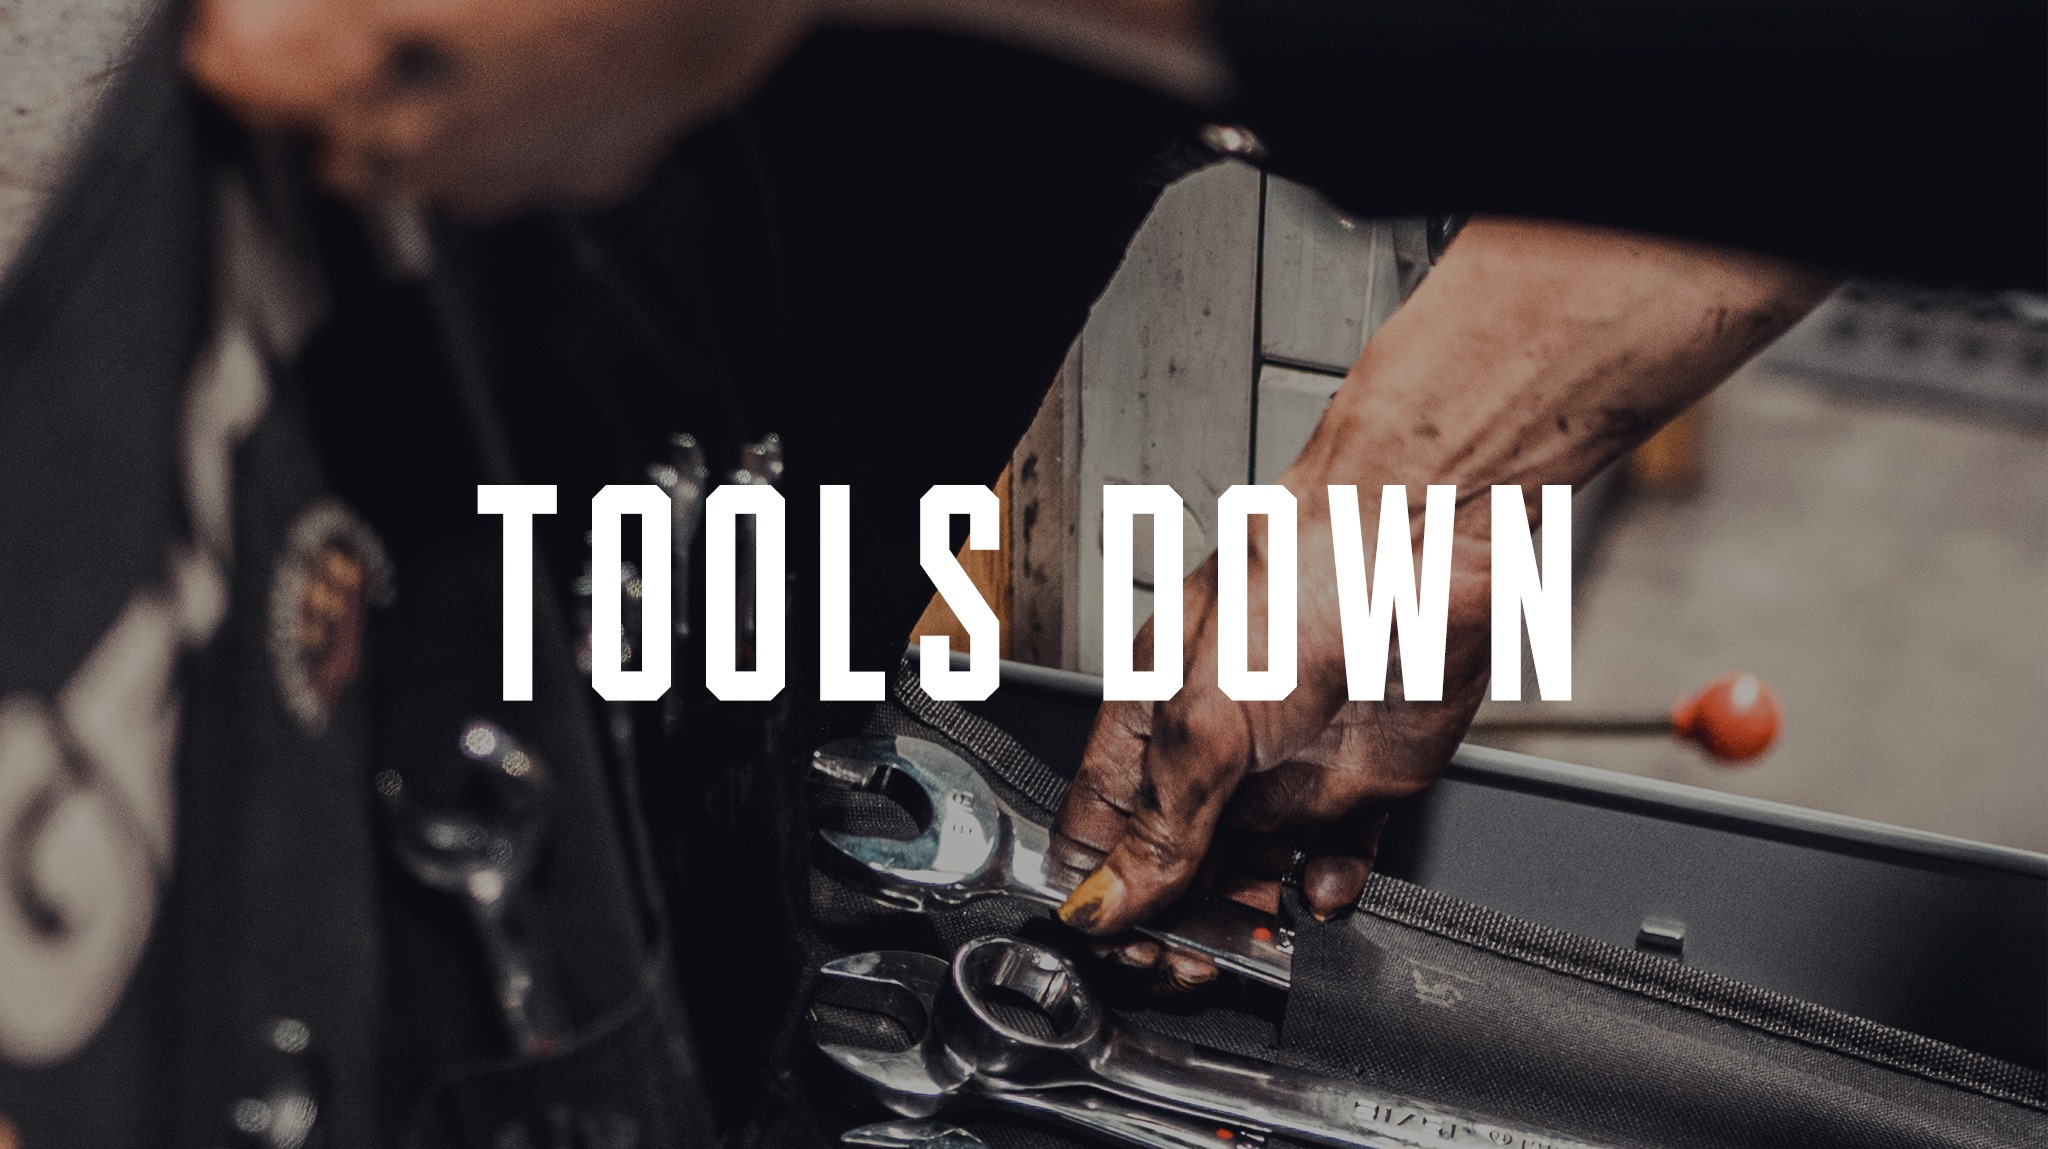 Tools down at Kustom Kommune CVID-19